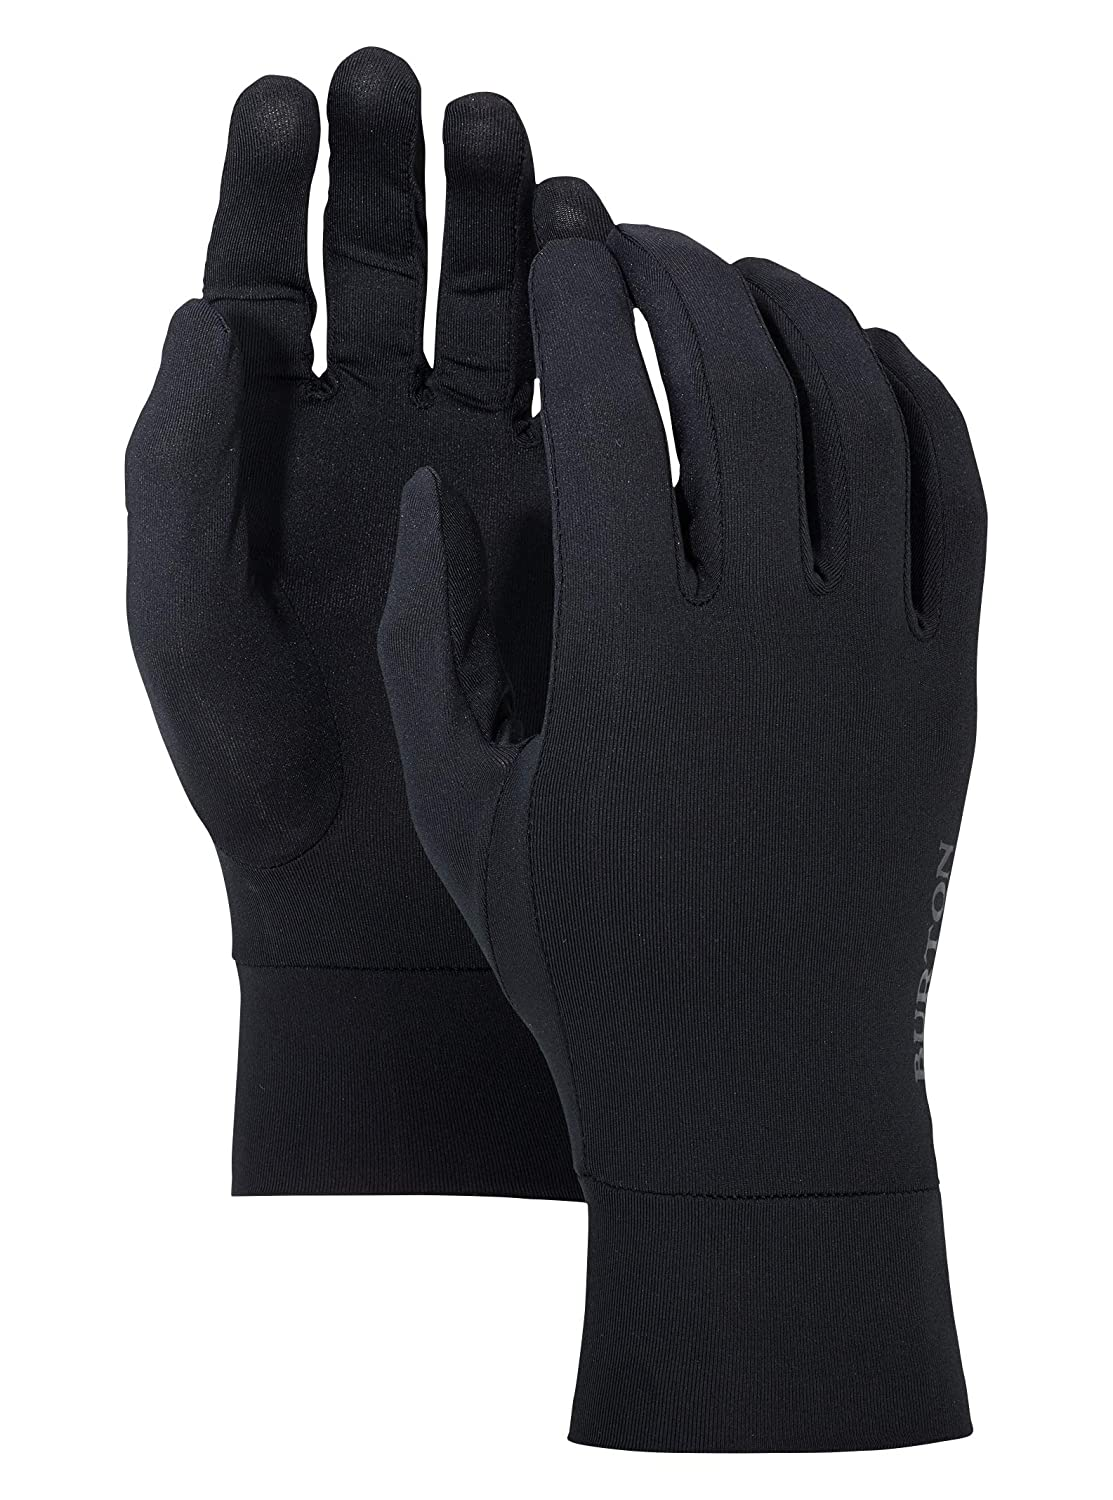 Burton Touchscreen Liner Gloves, True Black, Medium/Large Burton Snowboards 103191